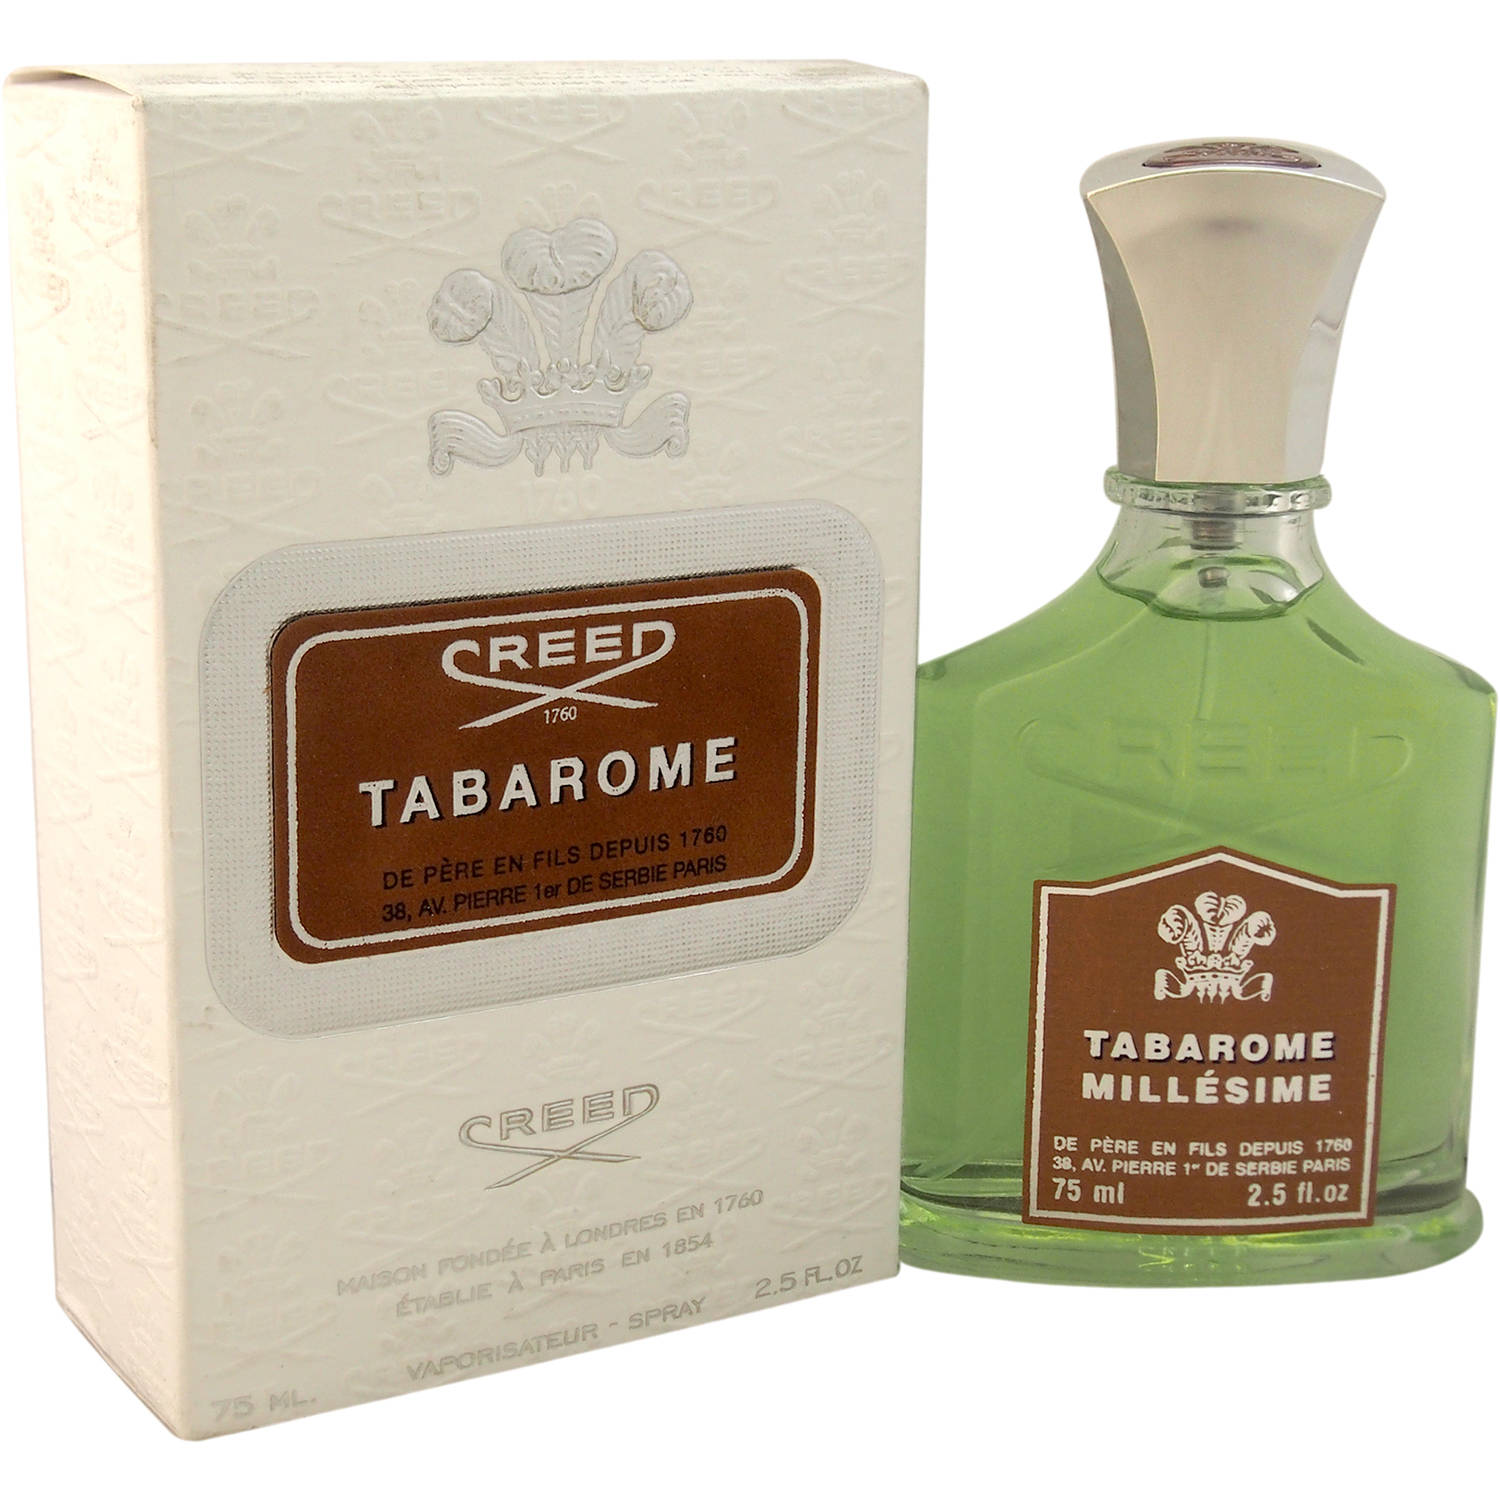 Creed Tabarome Millesime Spray, 2.5 fl oz